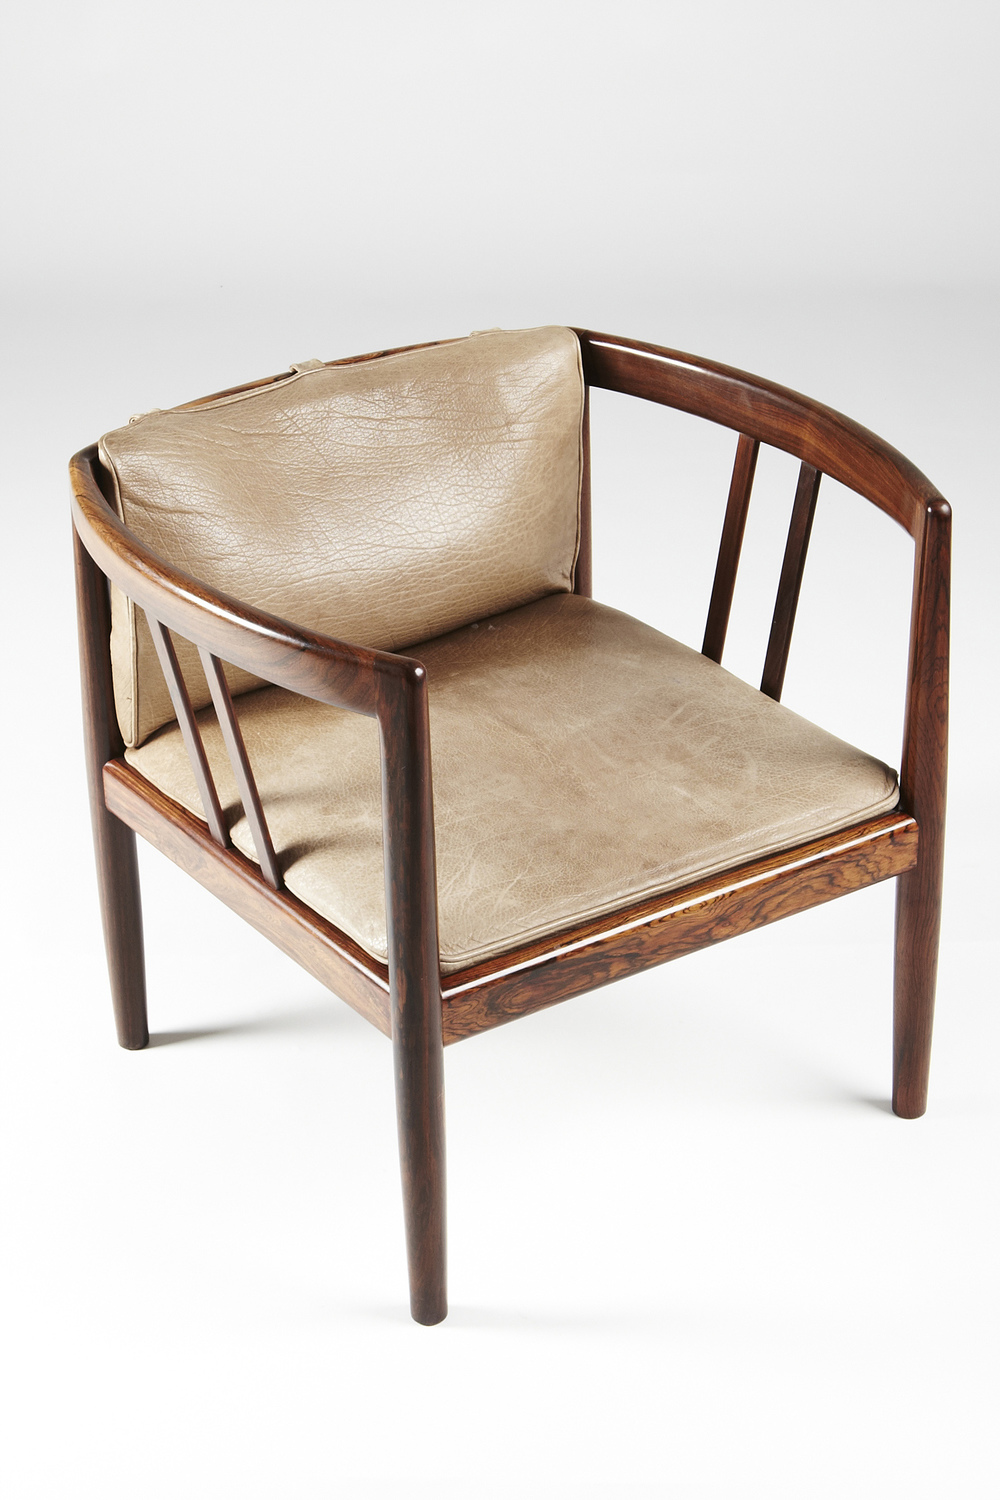 Wikkelso Handy Chair • made 1960-69 •